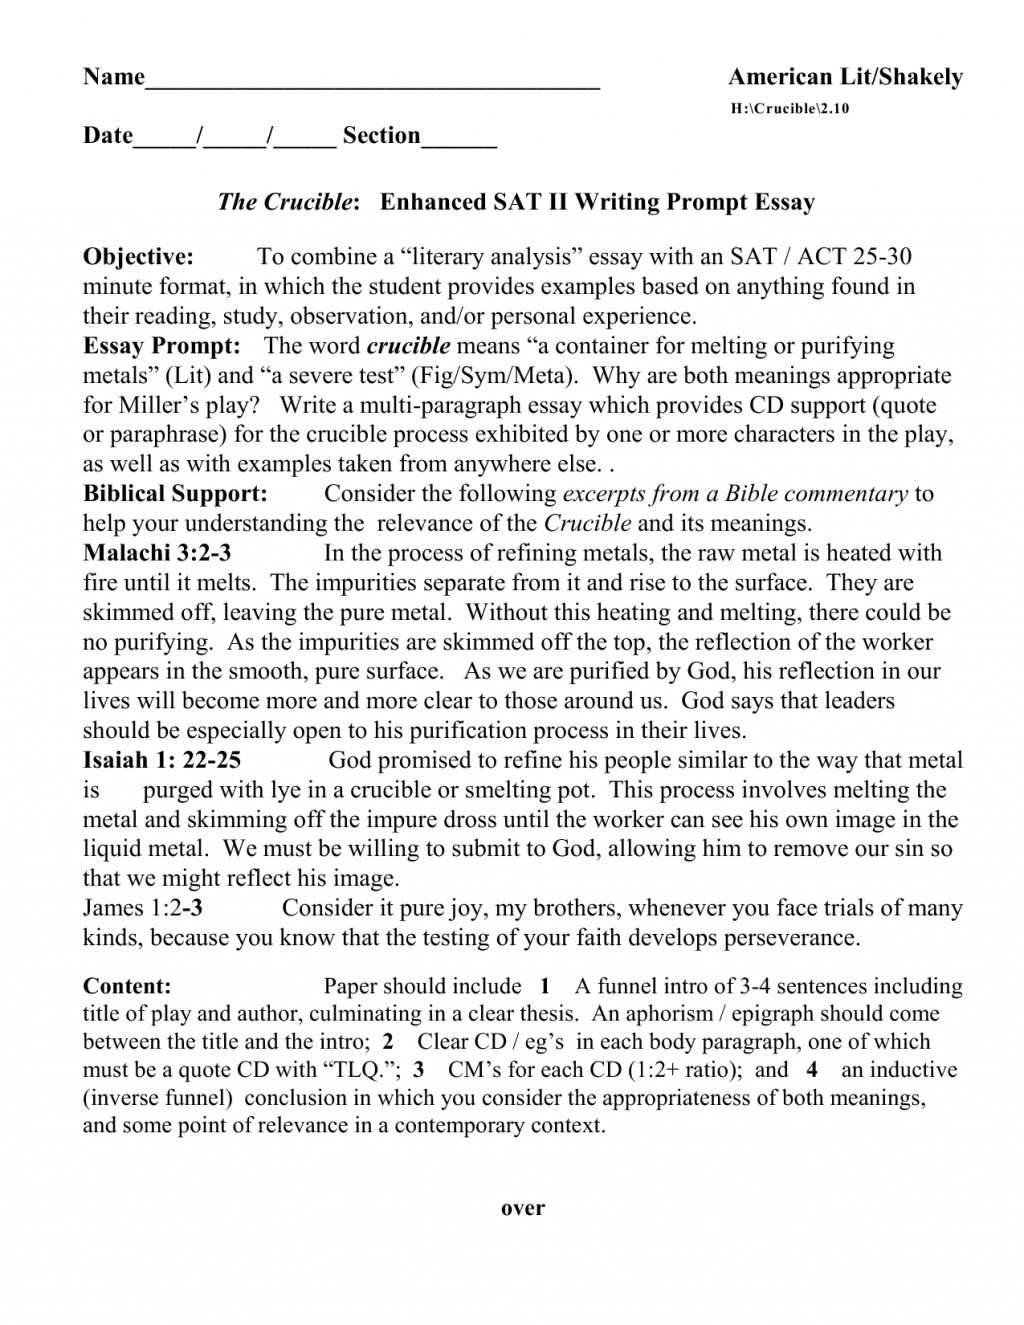 002 Sat Essay Sample Example Quotes Quotesgram Is There An On The L Wondrous Pdf Large